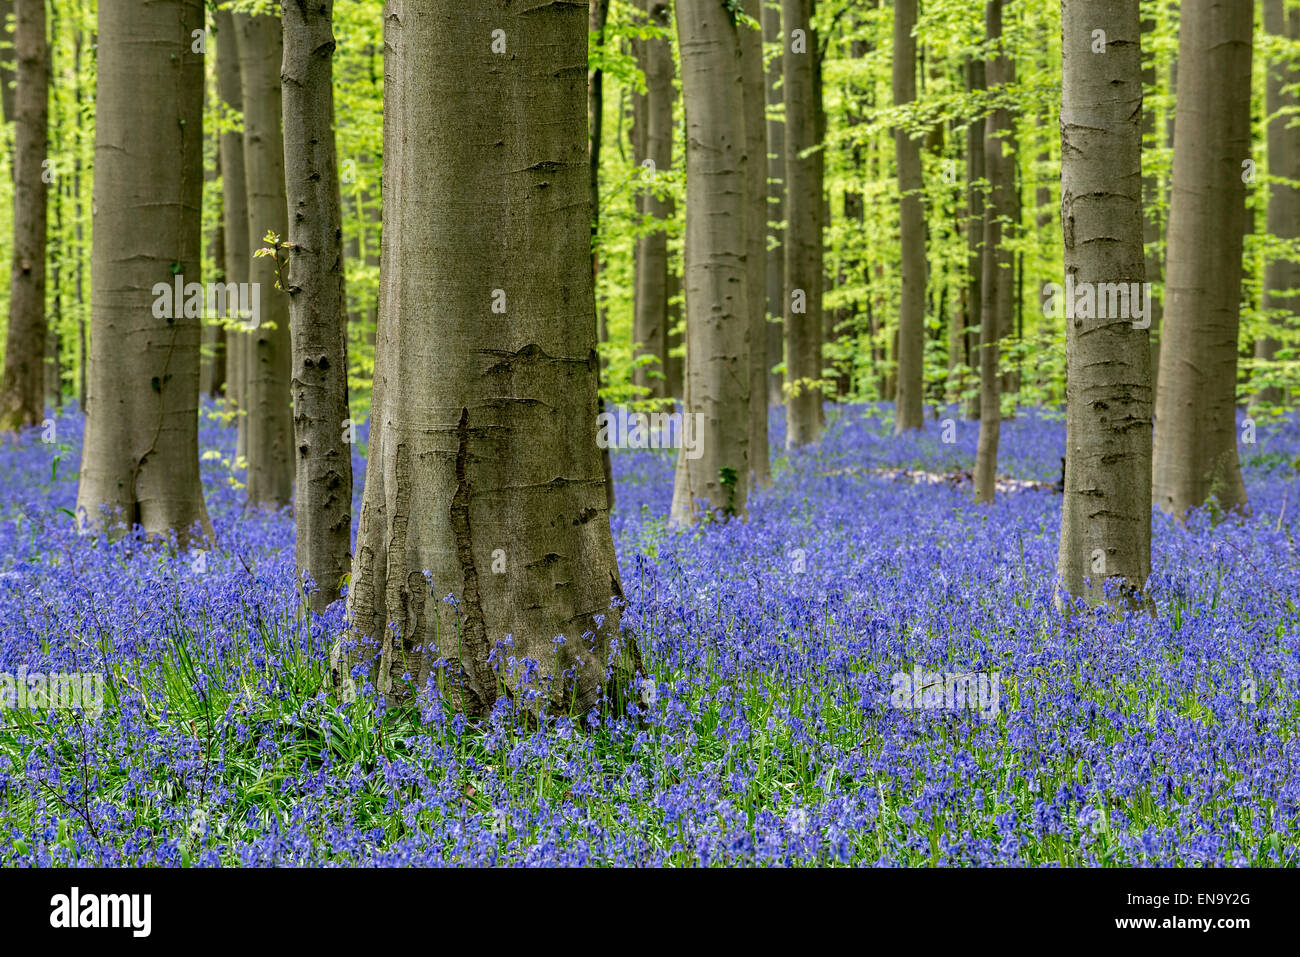 Bluebells (Endymion nonscriptus) in flower in beech forest (Fagus sylvatica) in spring - Stock Image